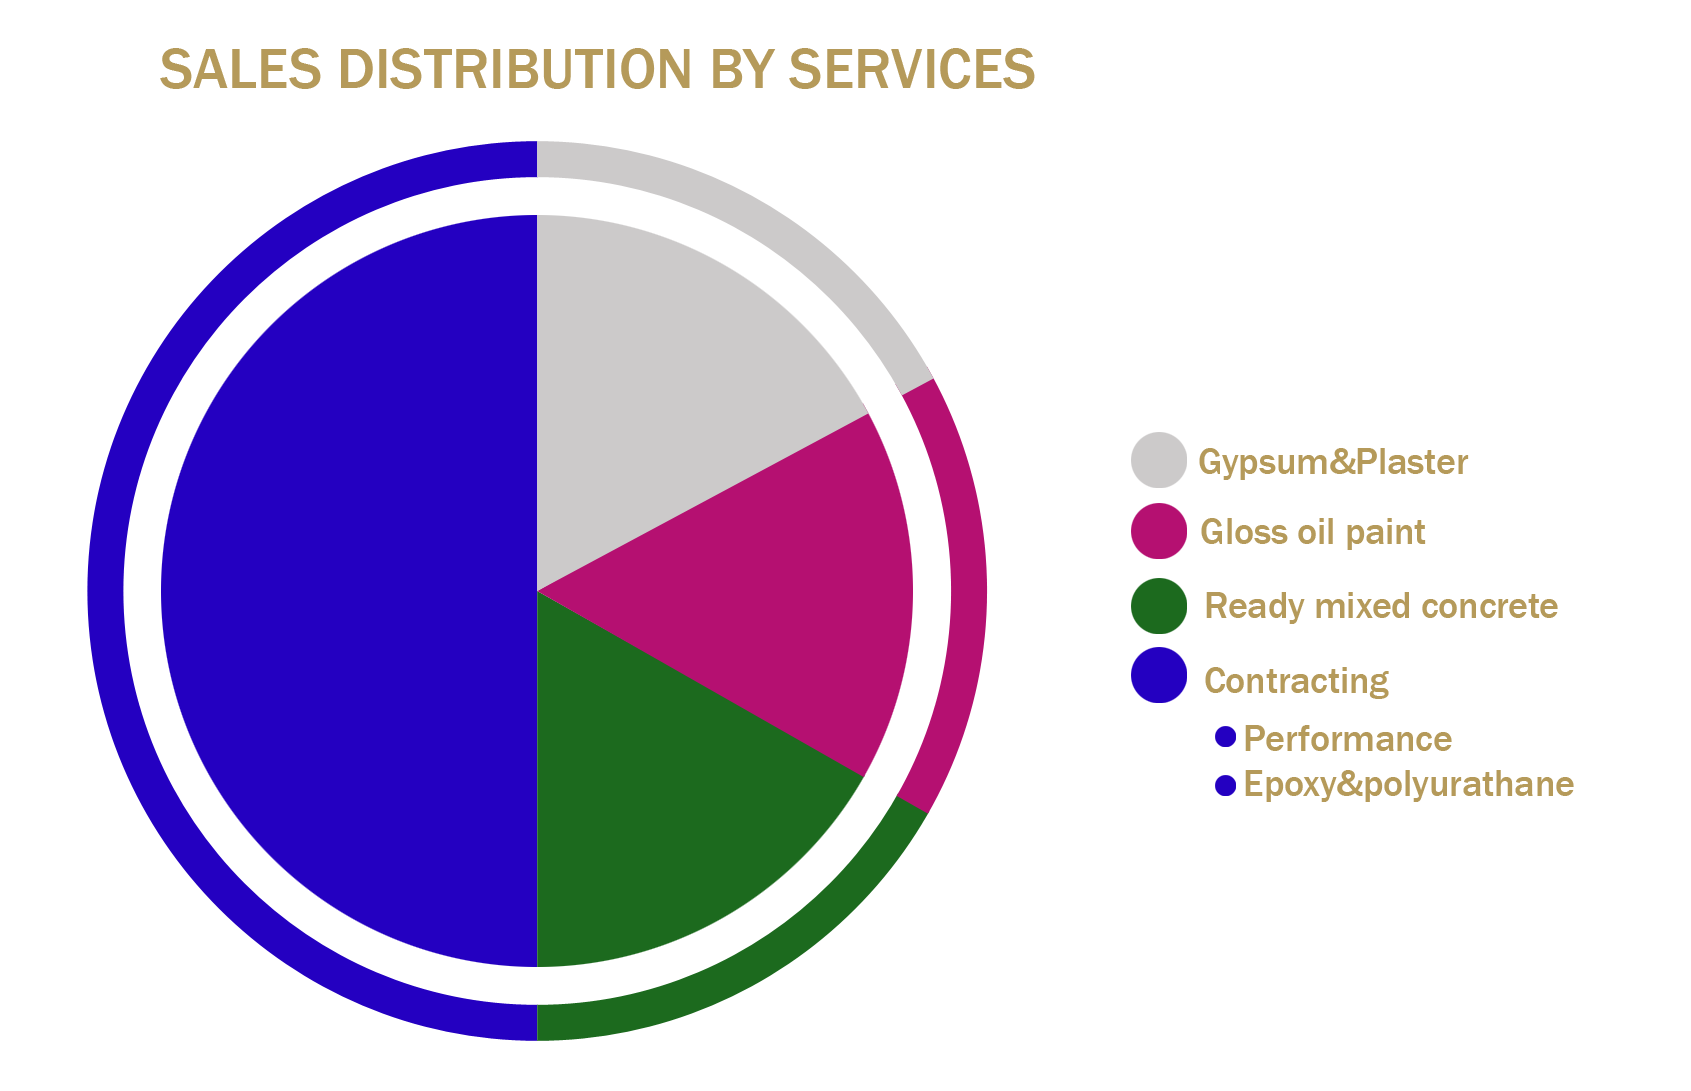 SALES DISTRIBUTION BY SERVICES